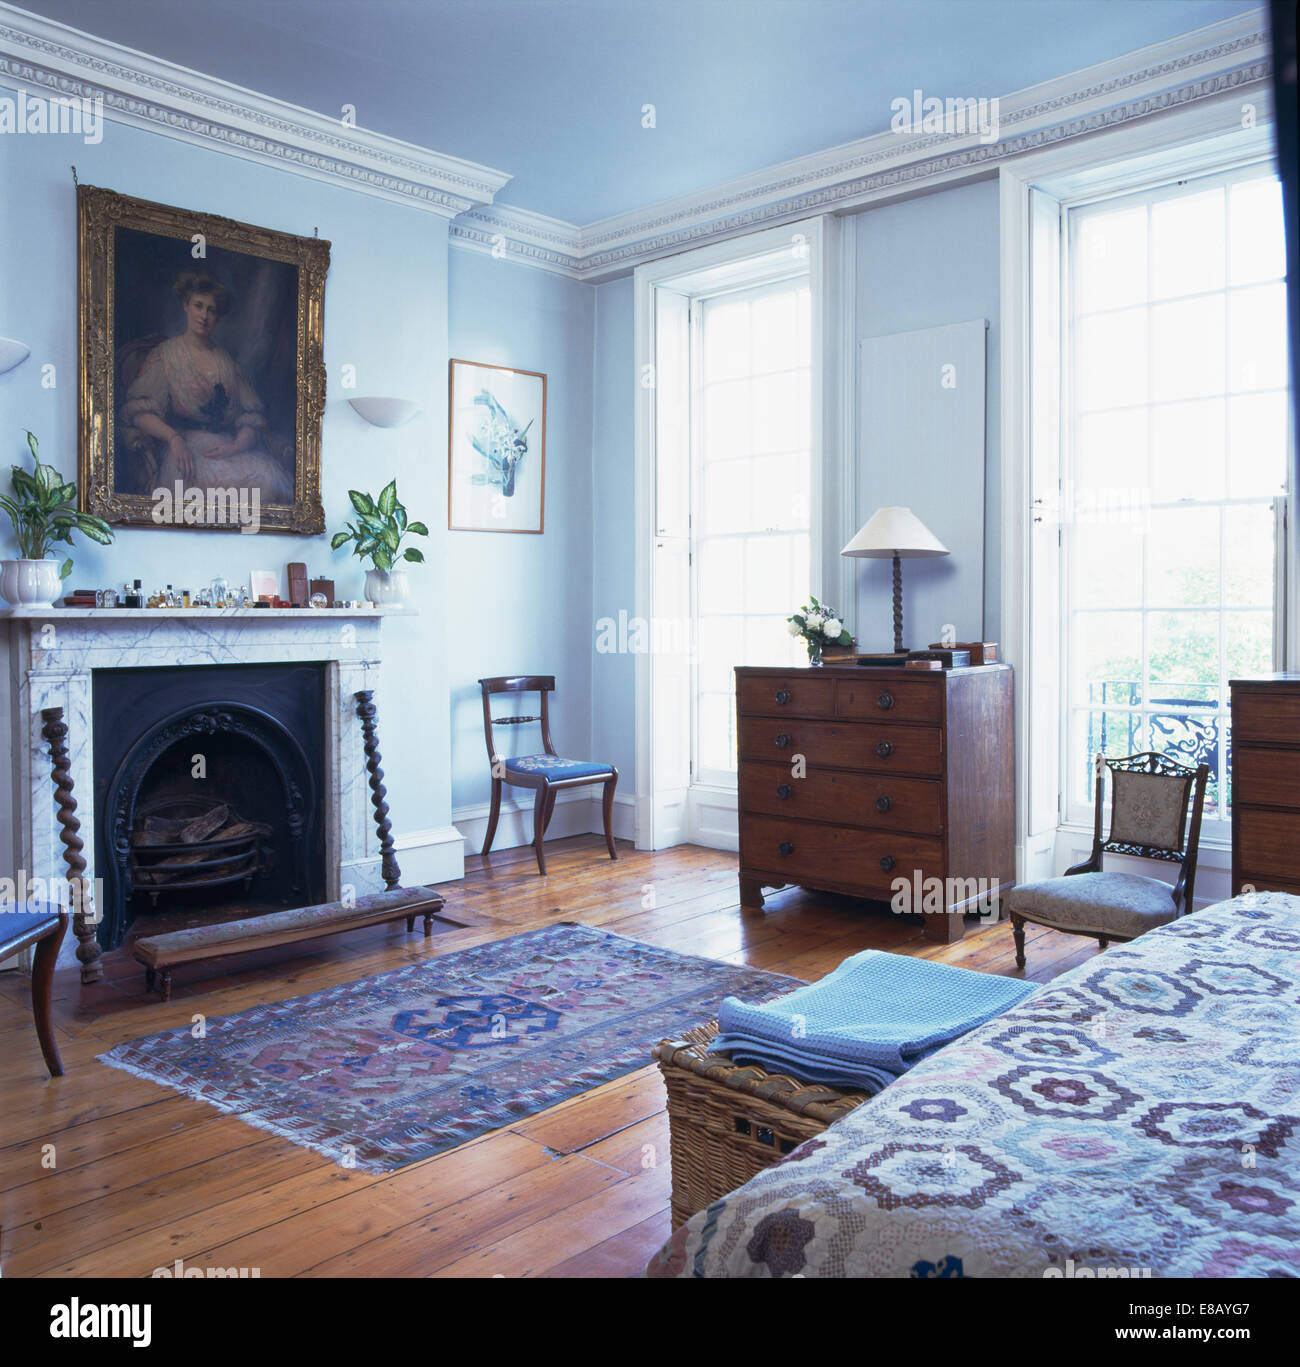 Large Picture Above Marble Fireplace In Pale Blue Bedroom With Small